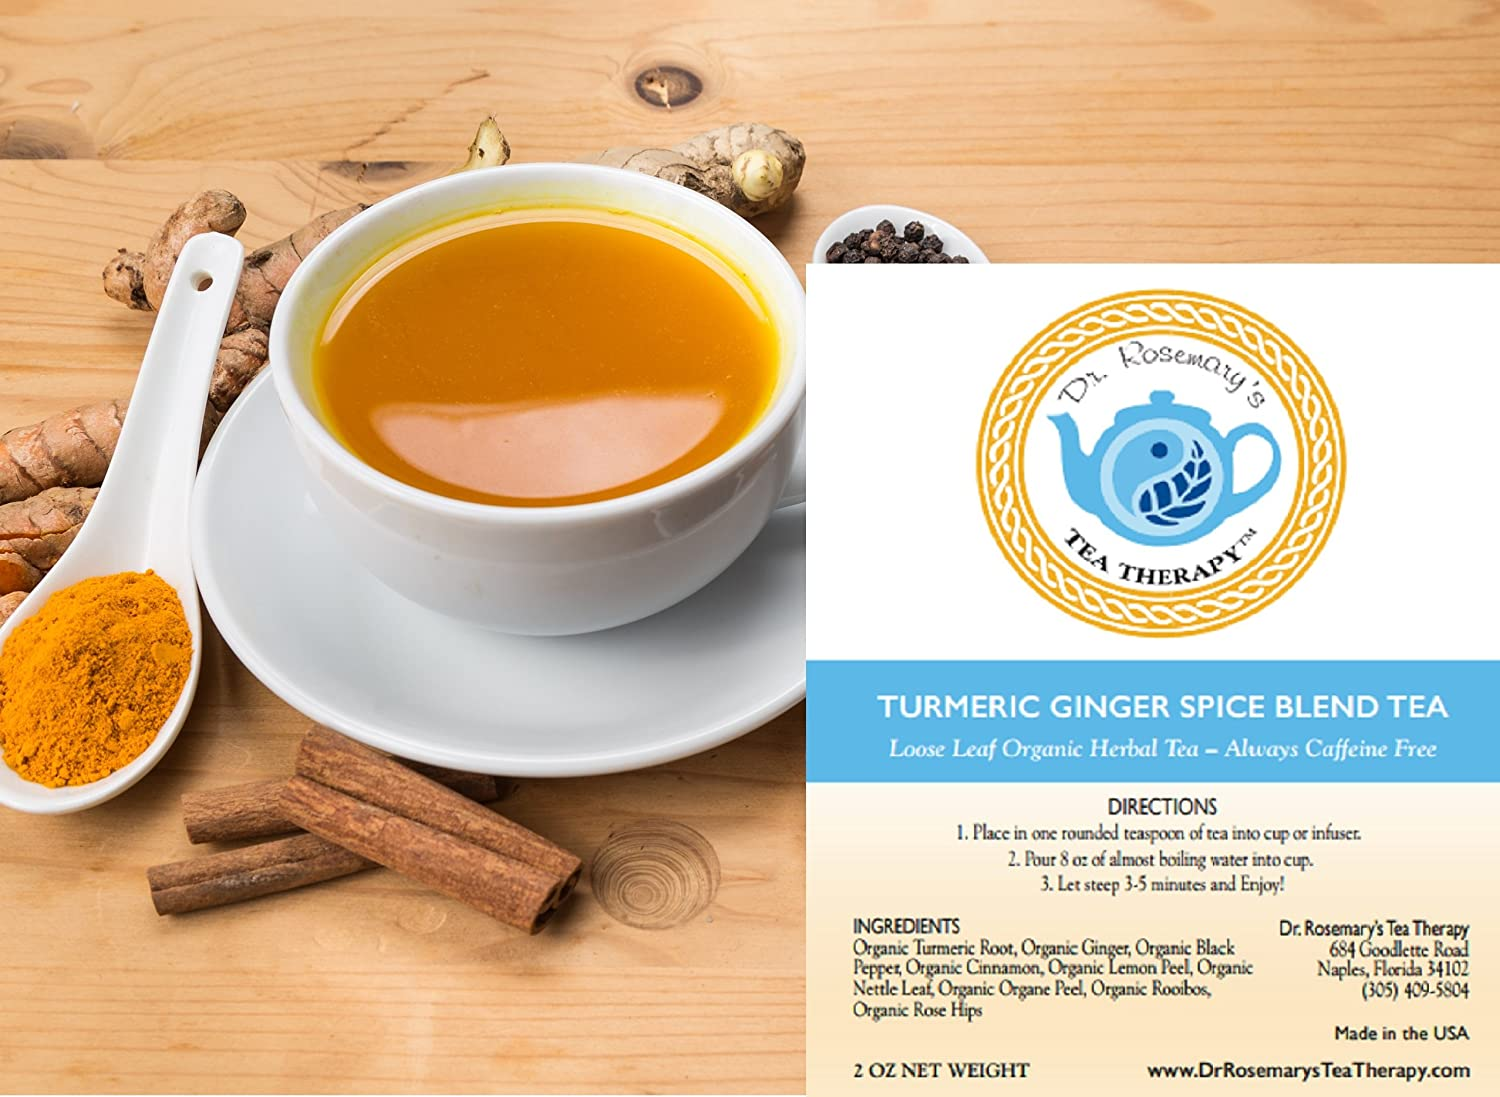 Turmeric Ginger Spice Blend Herbal Tea - Organic Caffeine & Gluten Free  Loose Leaf Herbal